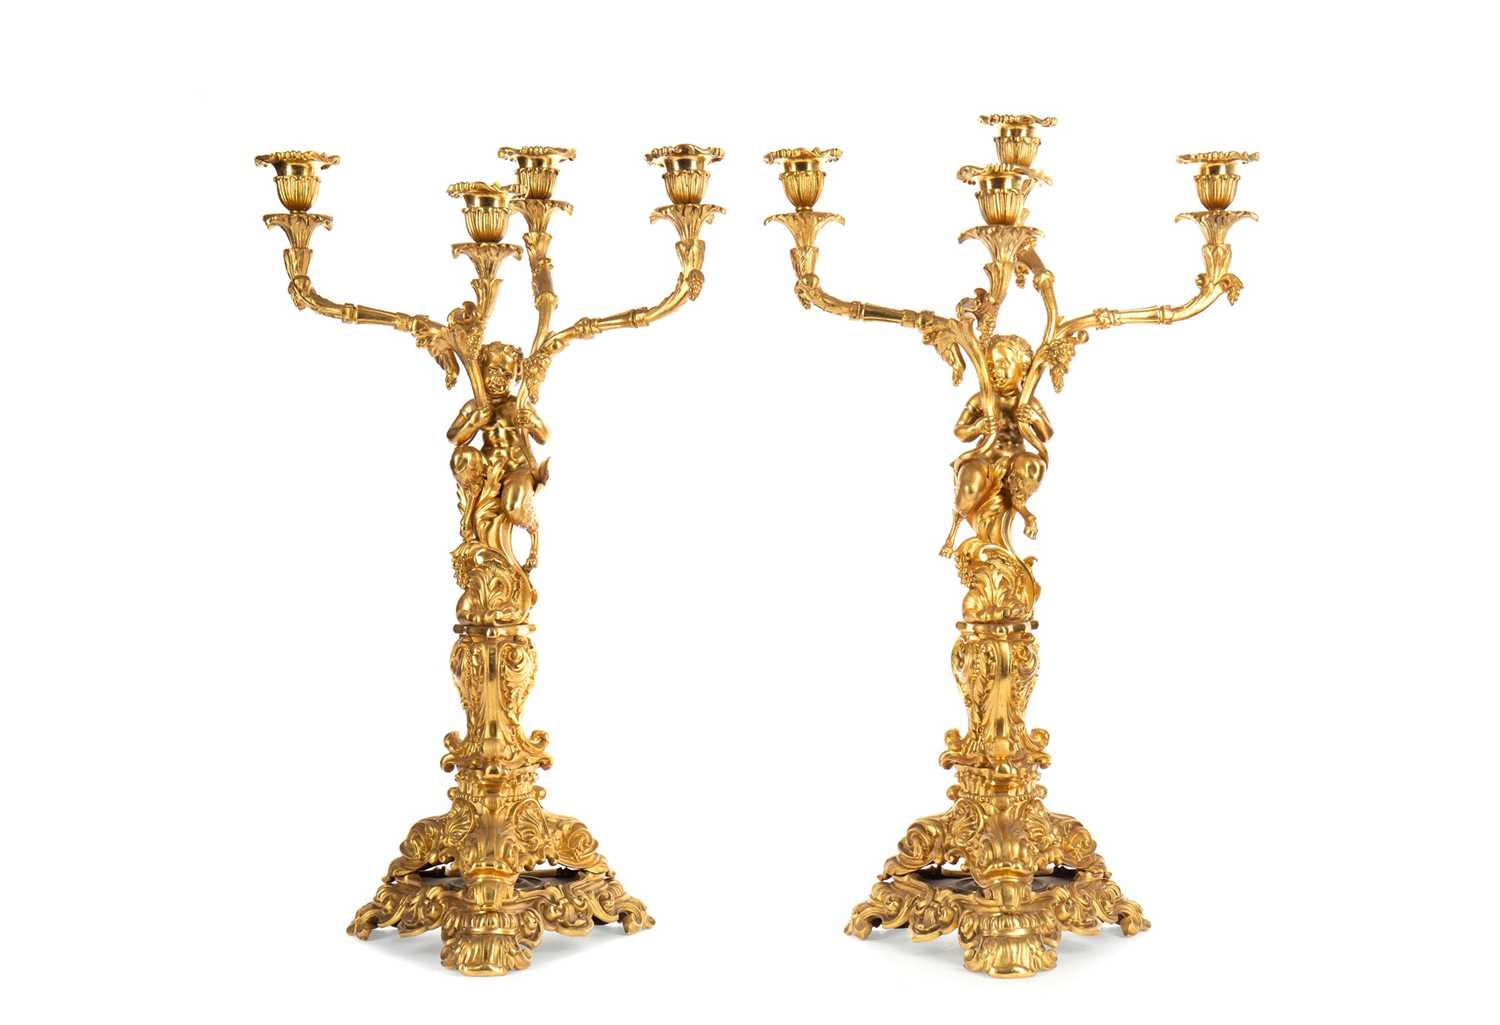 Lot 1348 - A HANDSOME PAIR OF LATE 19TH CENTURY ORMOLU CANDELABRA